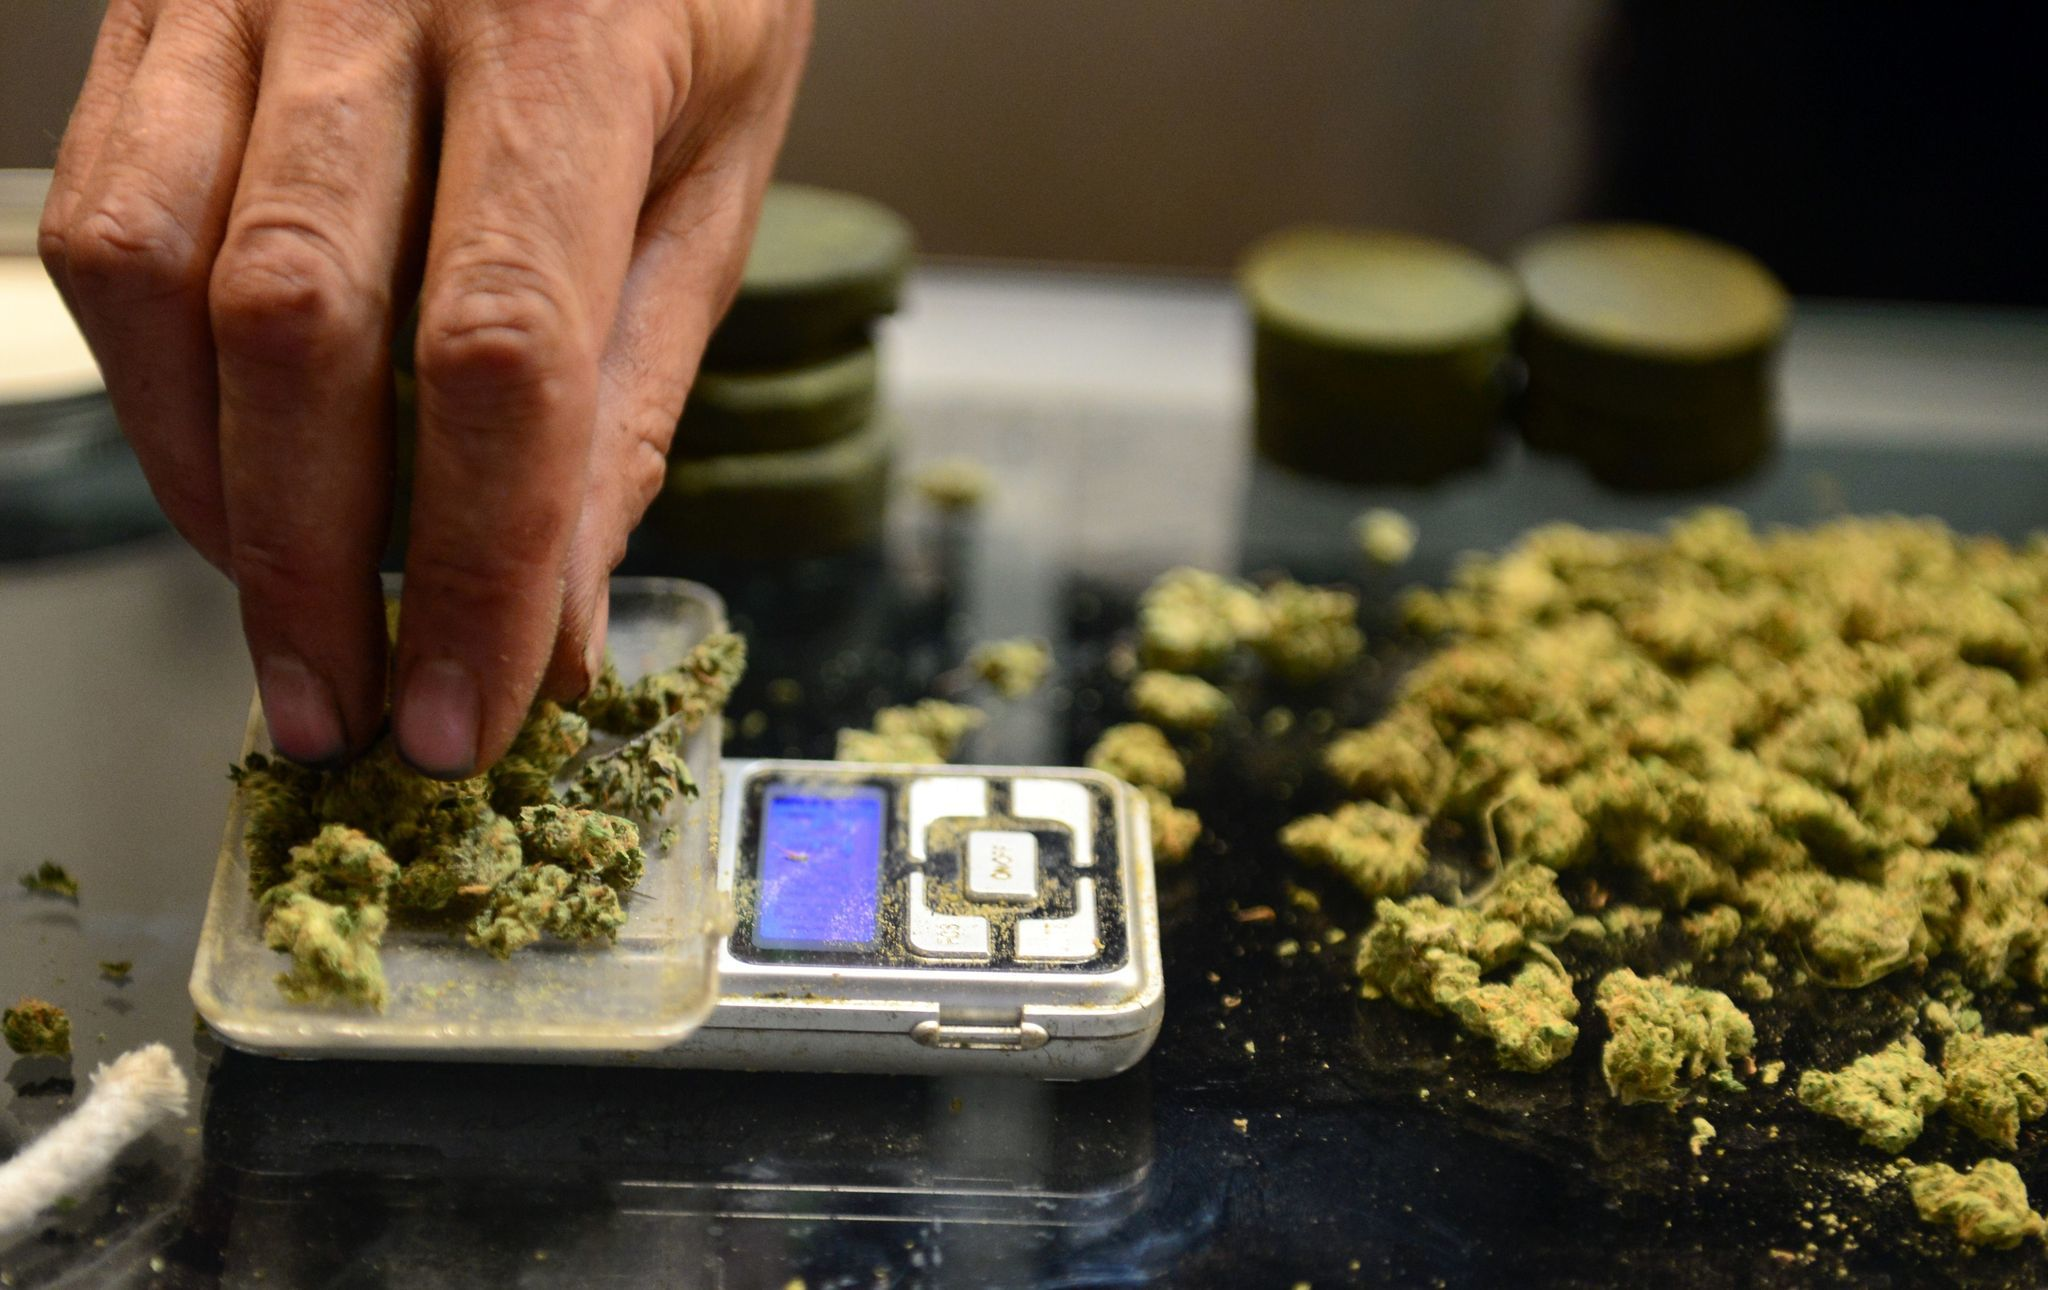 How much is an 8th mastering cannabis weights legalize it we